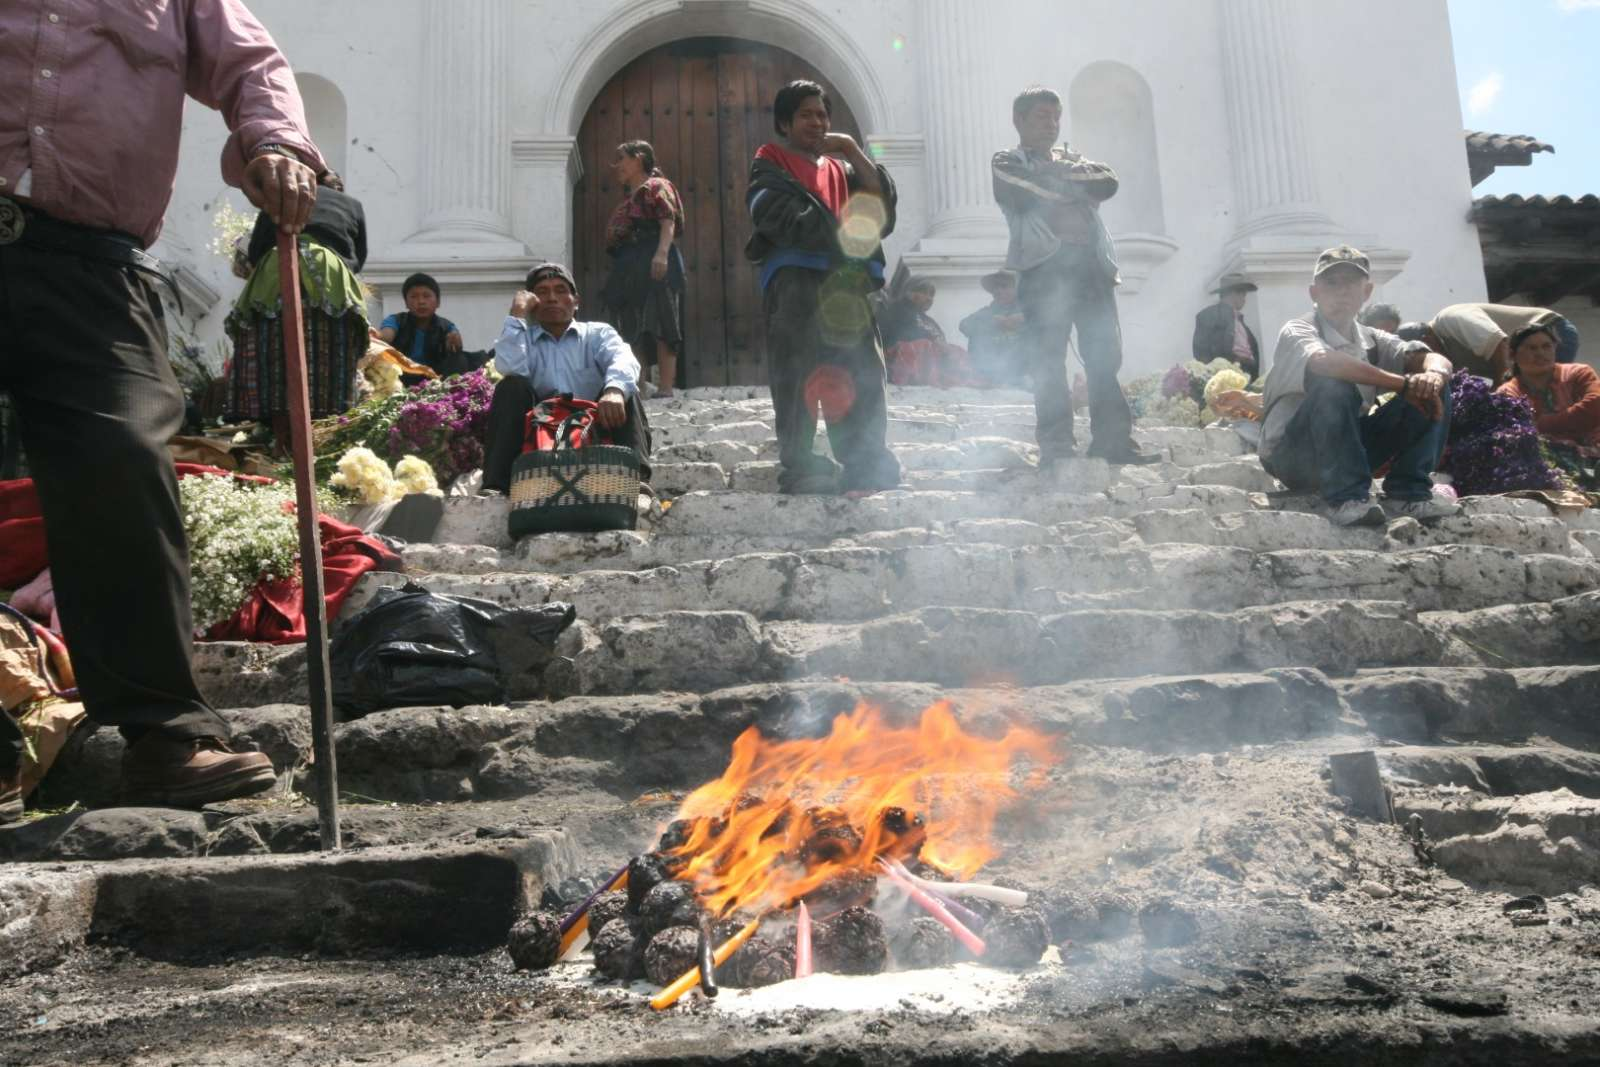 Religious offering on the church steps at Chichicastenango, Guatemala